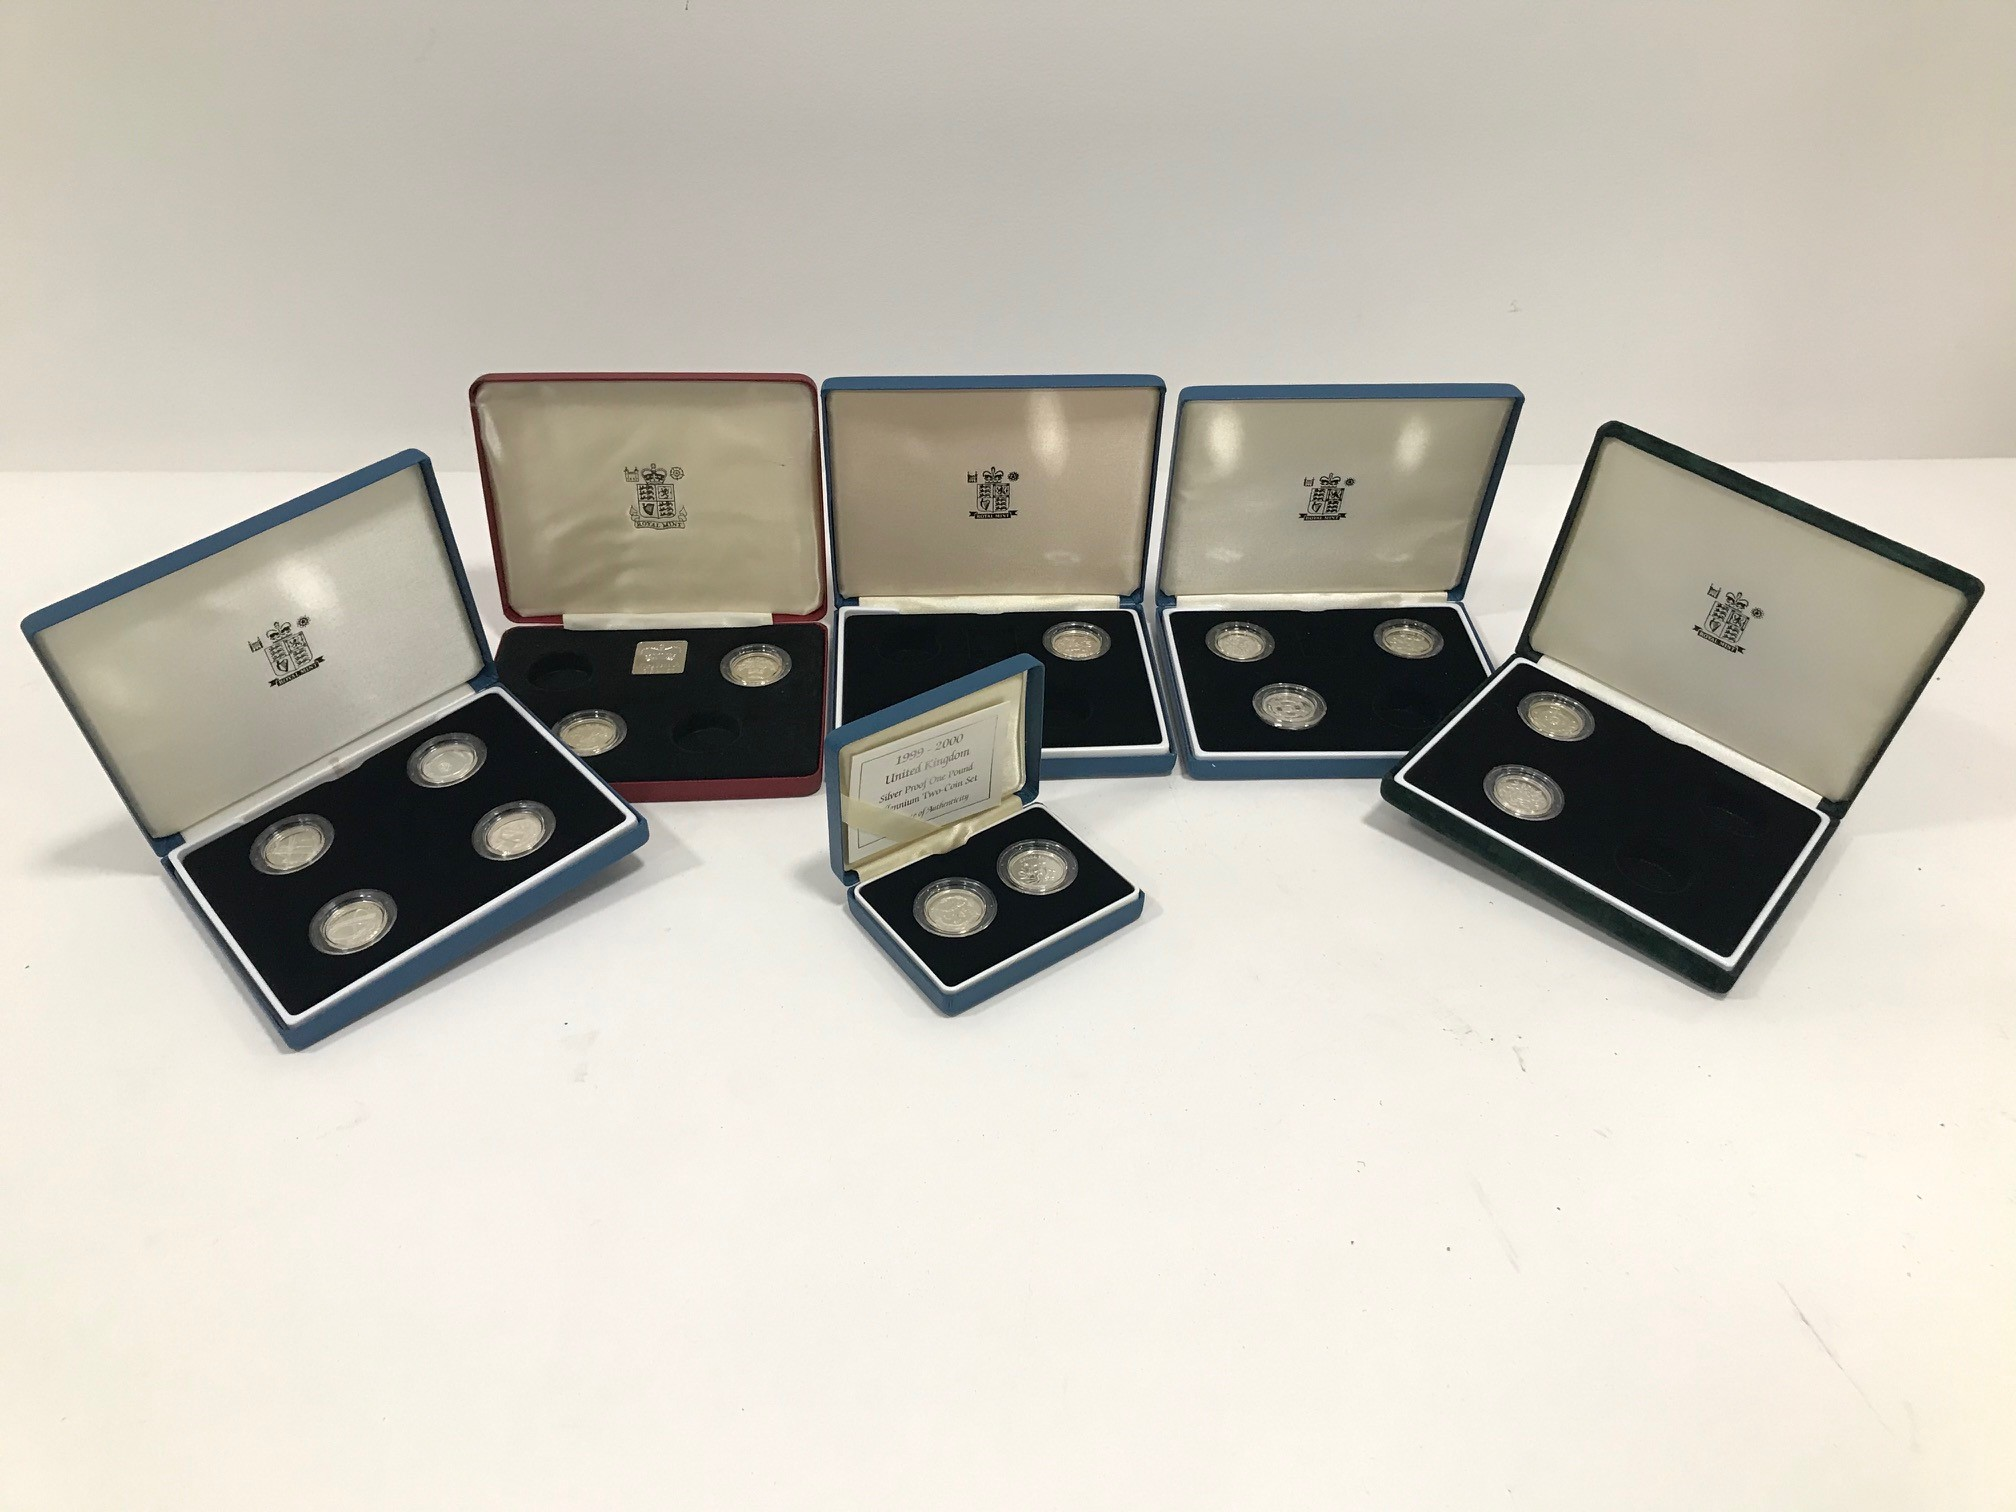 A group of fourteen Royal Mint silver proof £1 coins, in six boxes, dates from the 1980s up to